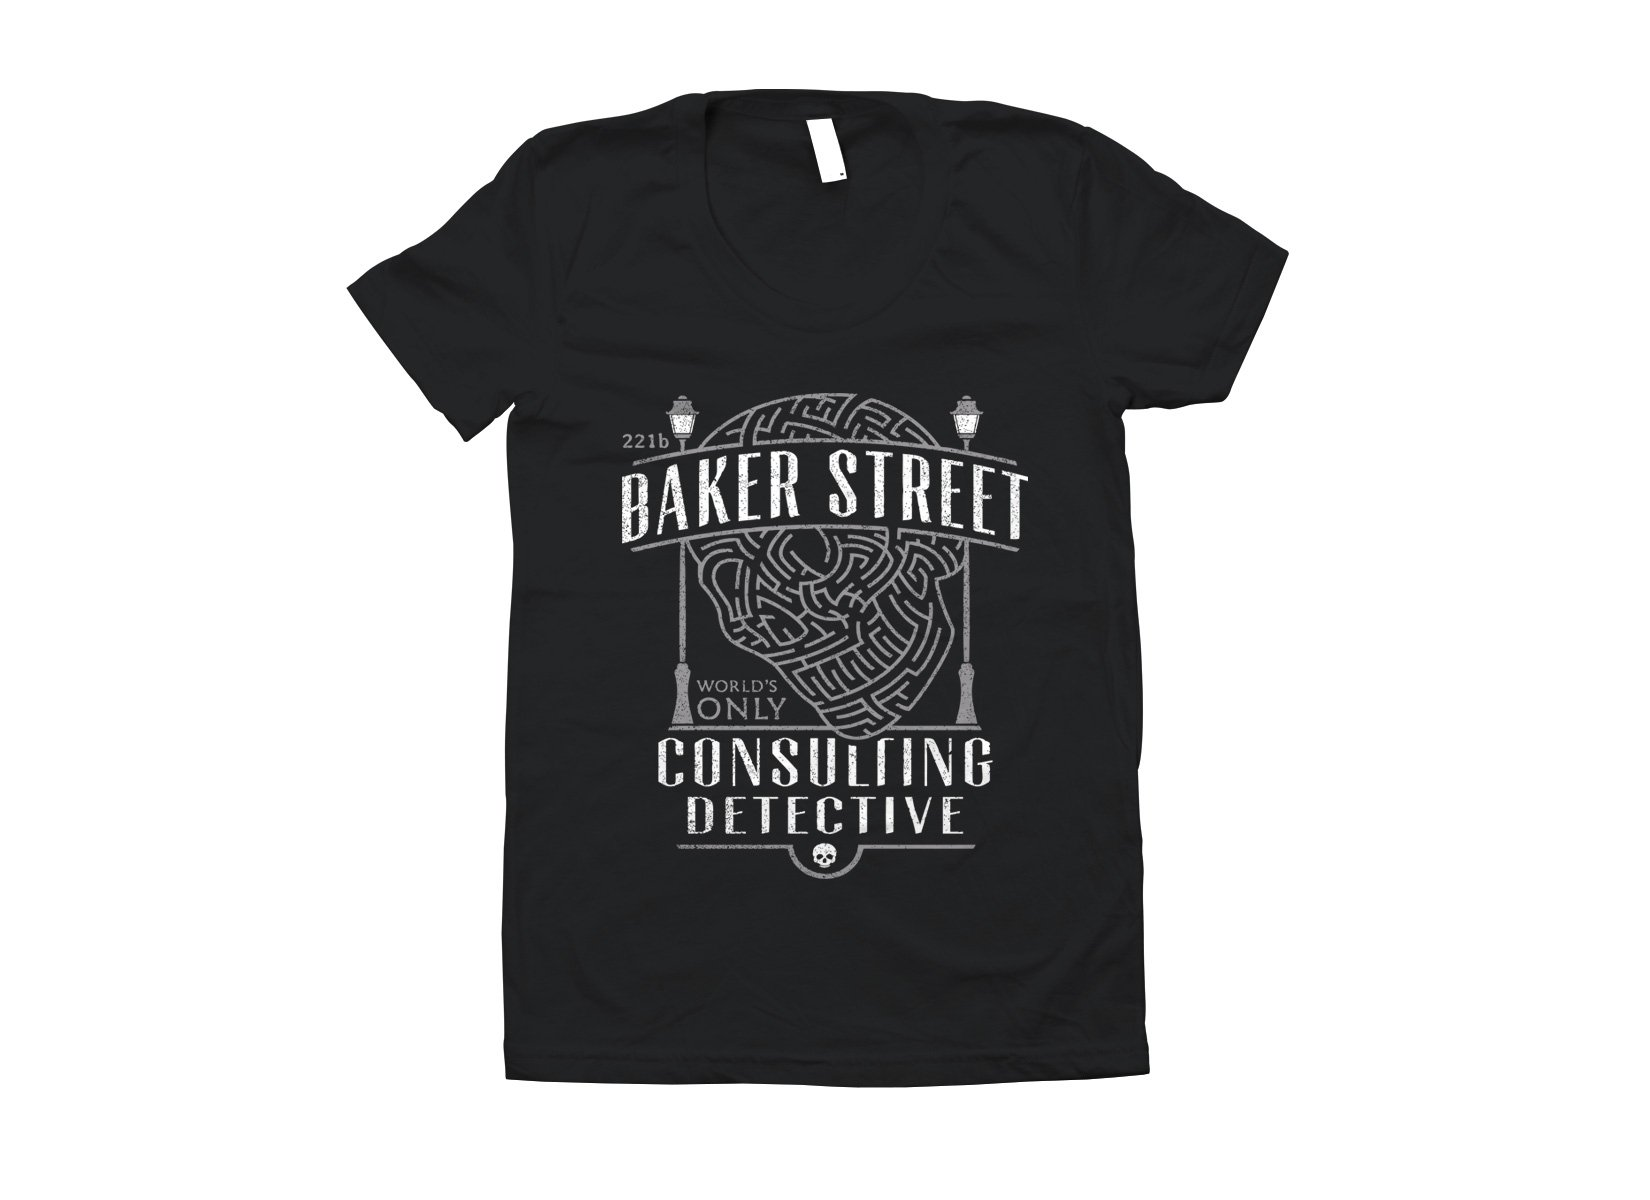 Baker Street Consulting Detective on Juniors T-Shirt